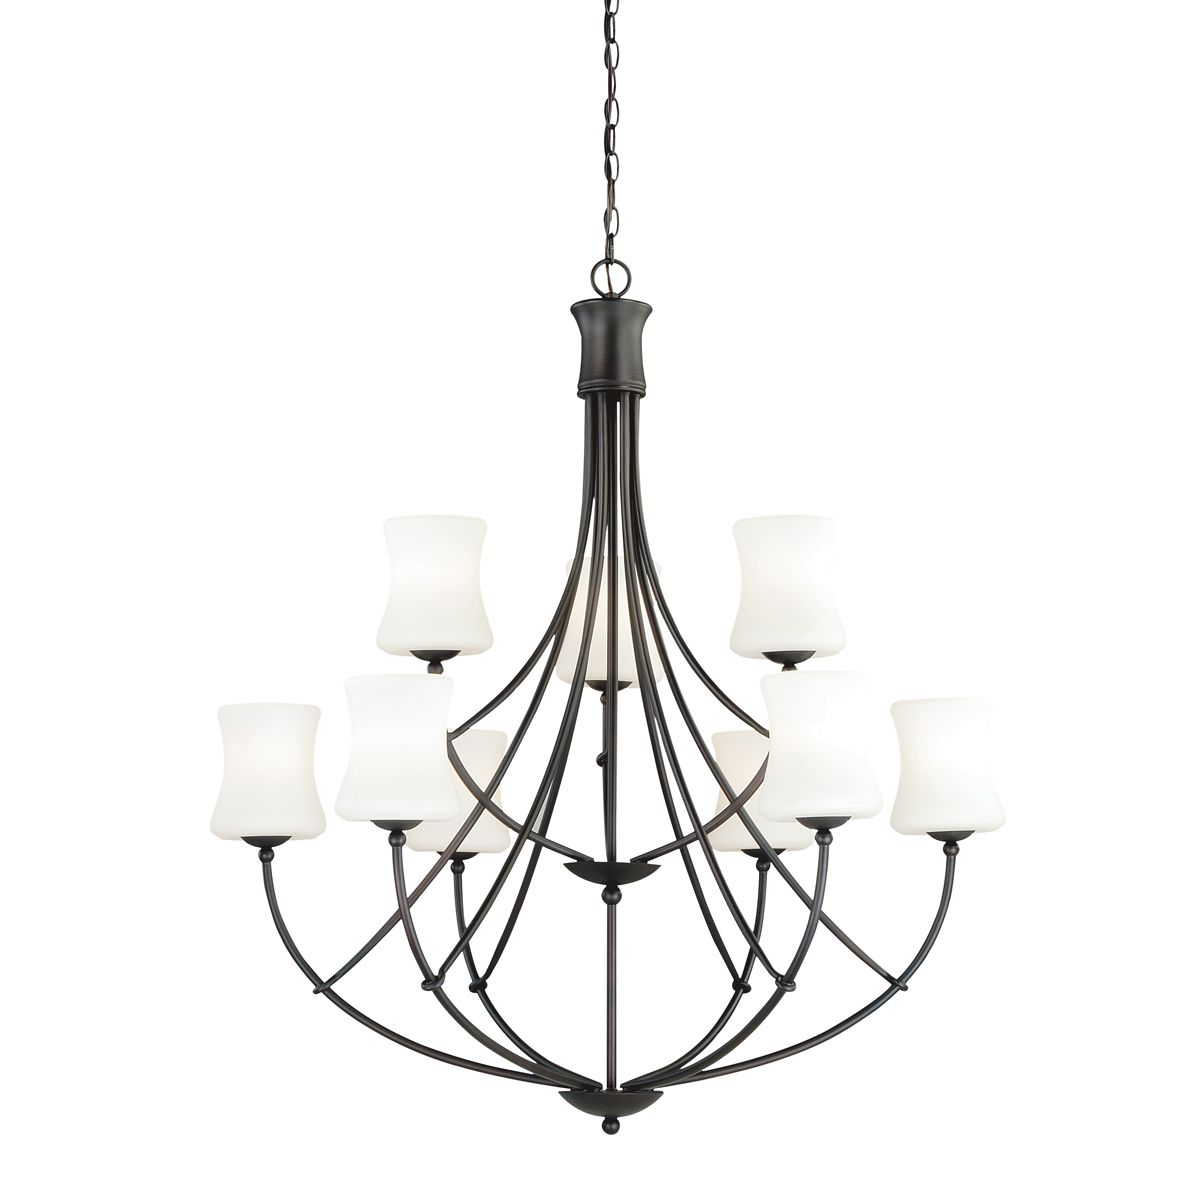 Ellis 9 Light Chandelier